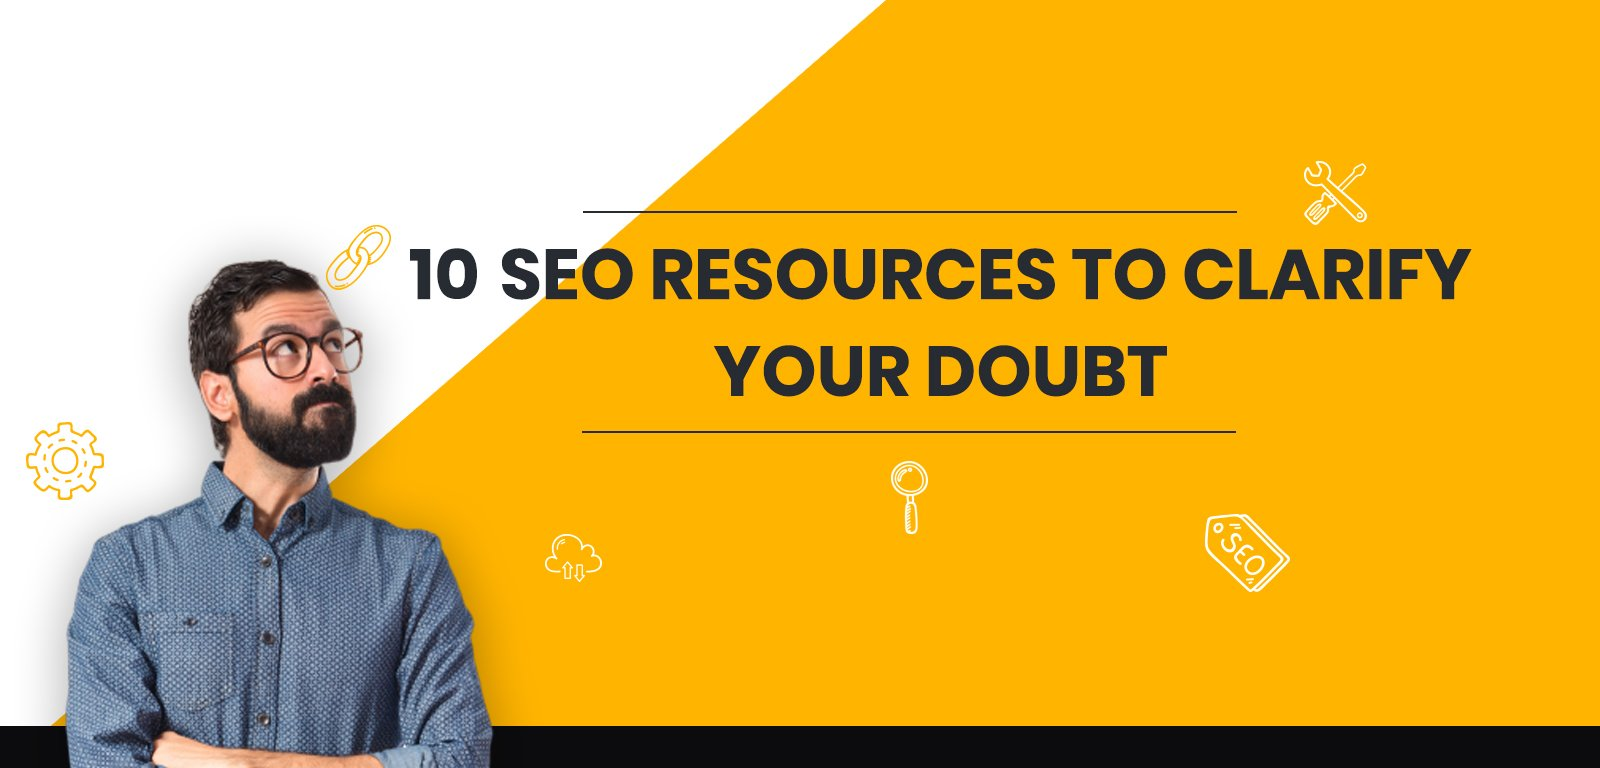 10 SEO Resources to clarify your doubt